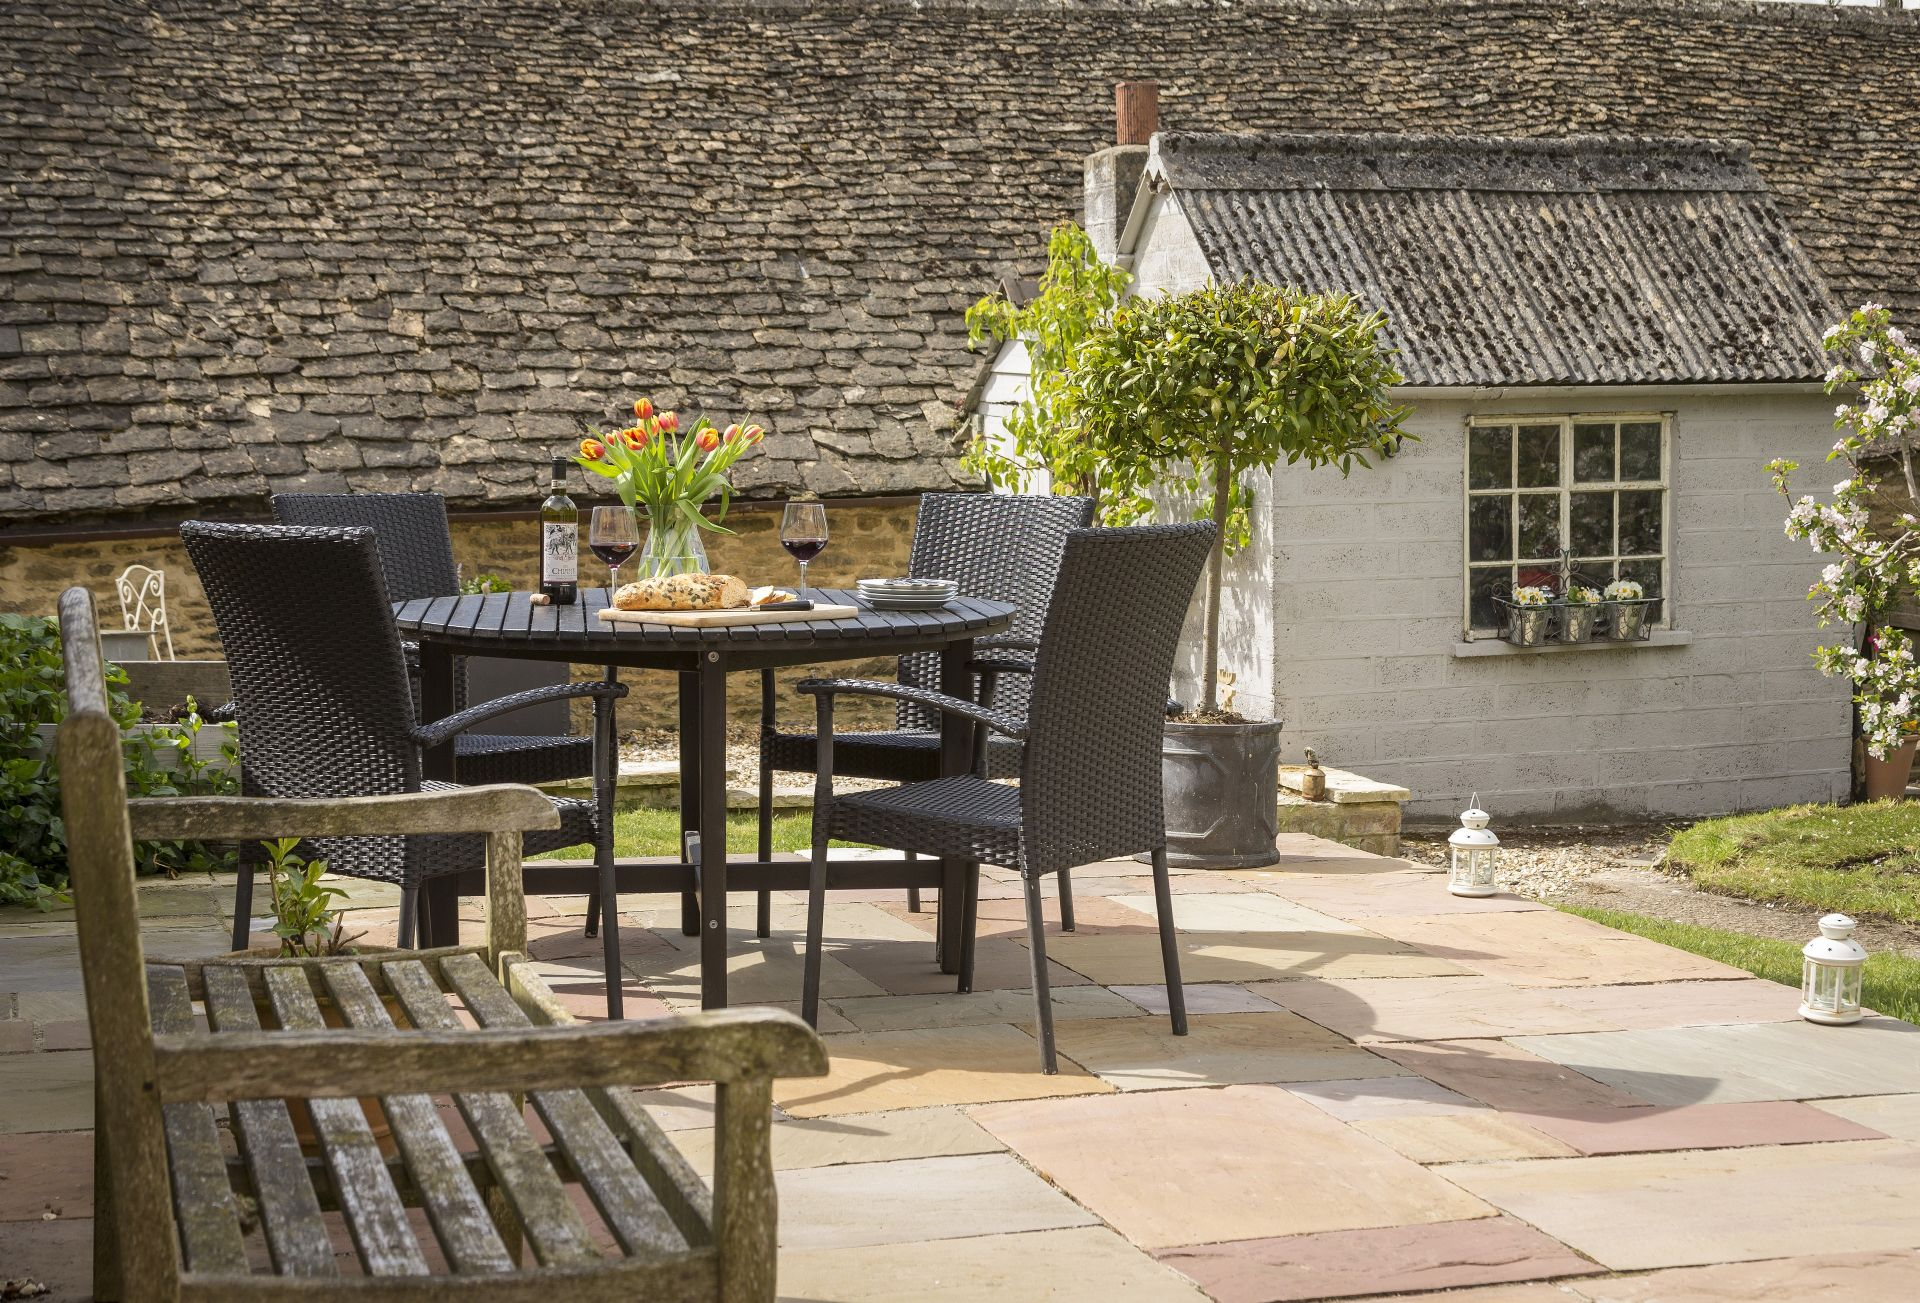 Mole End Cottage has a pretty patio for outdoor dining